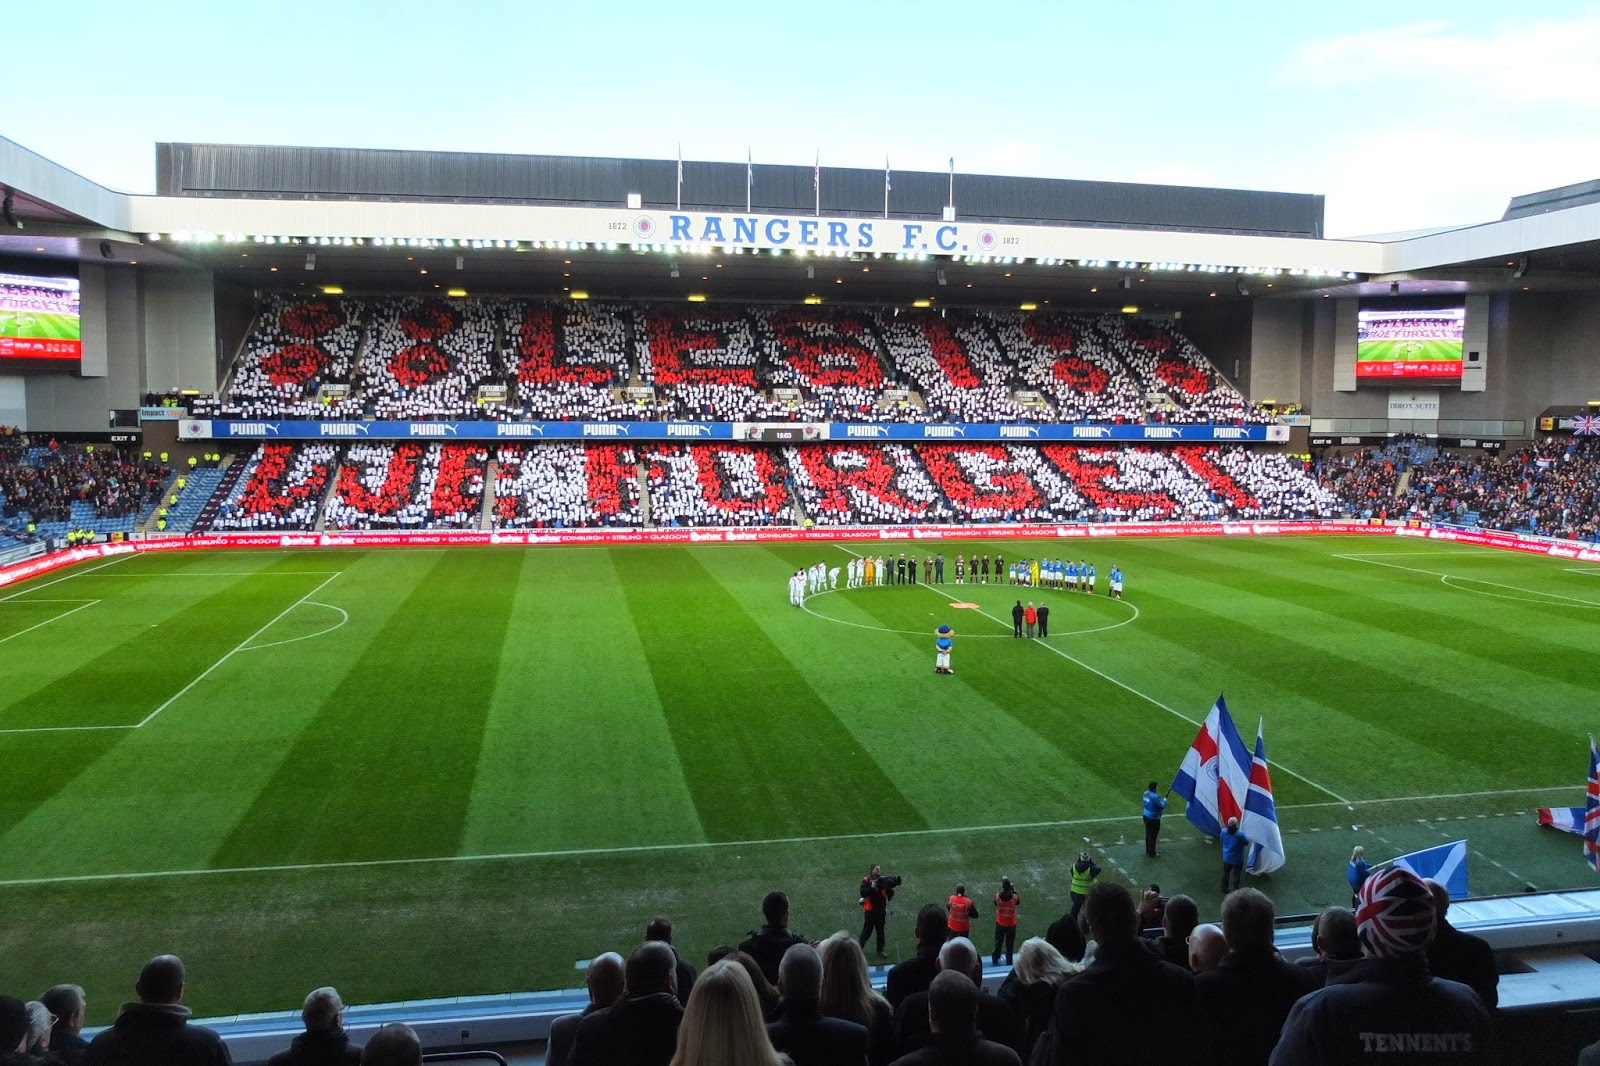 Rangers FC - We Welcome The Chase: Rangers FC - Lest We Forget